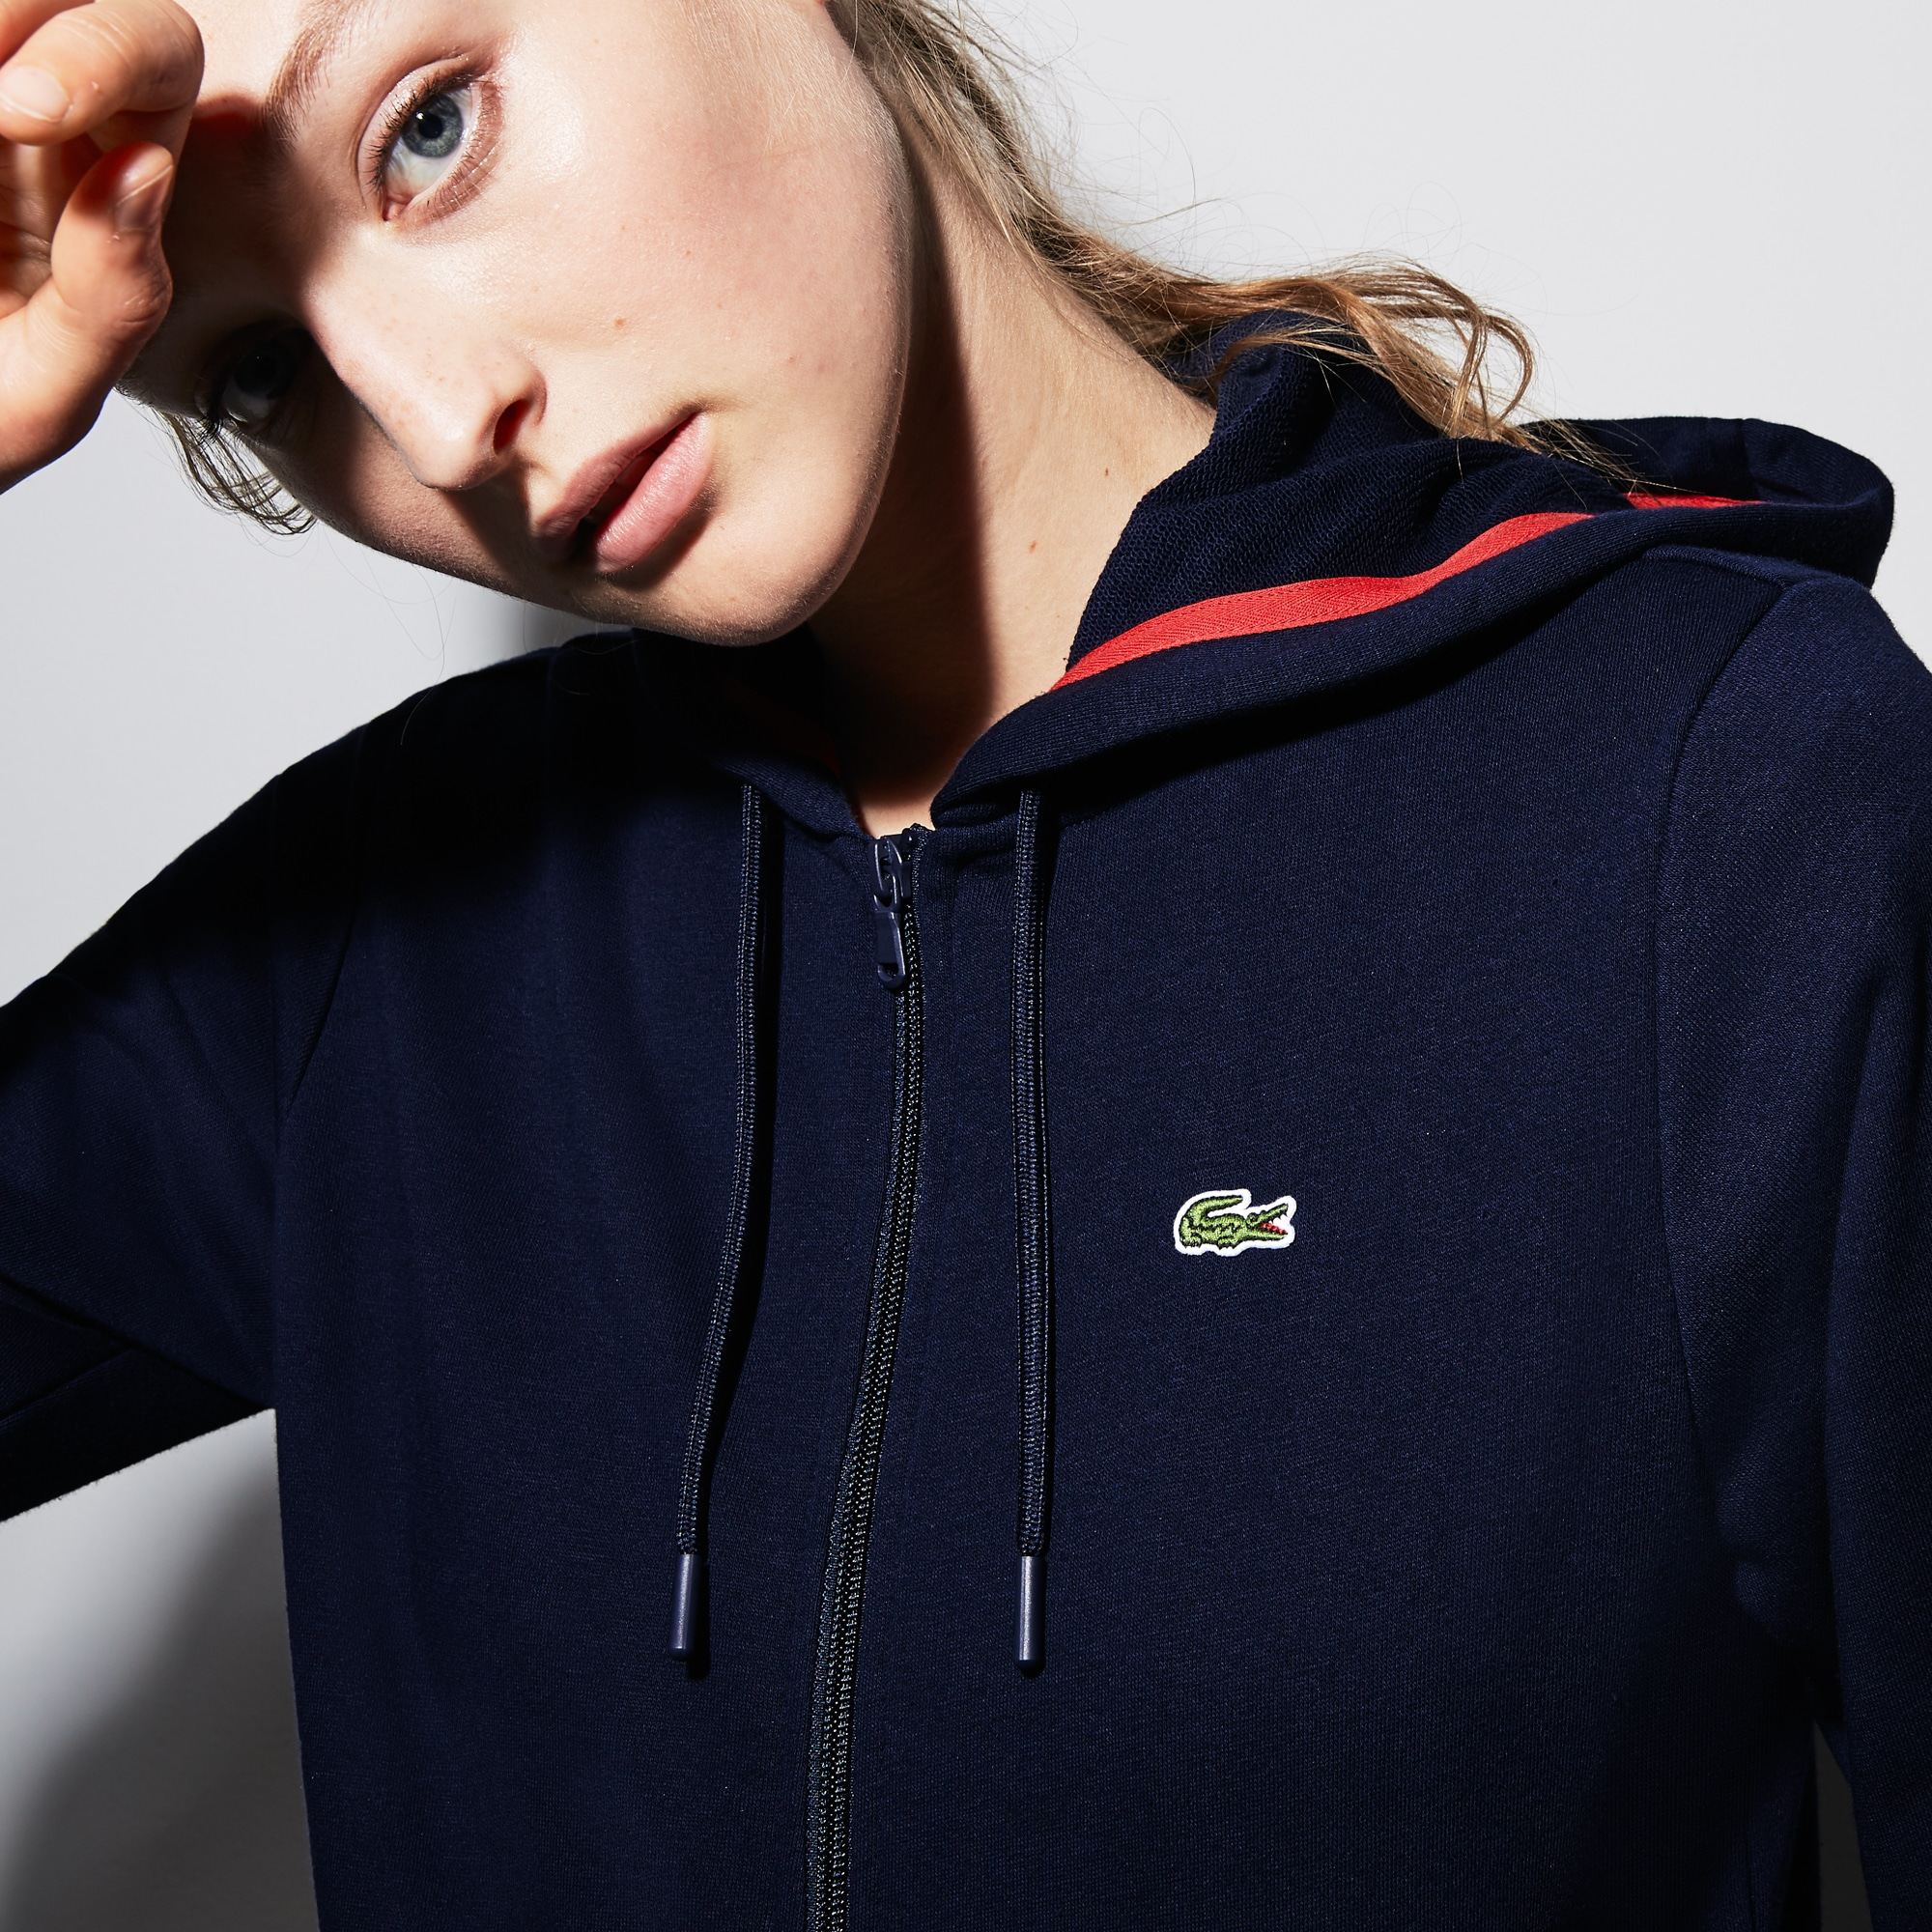 Women's Lacoste SPORT Tennis Hooded Zippered Fleece Sweatshirt